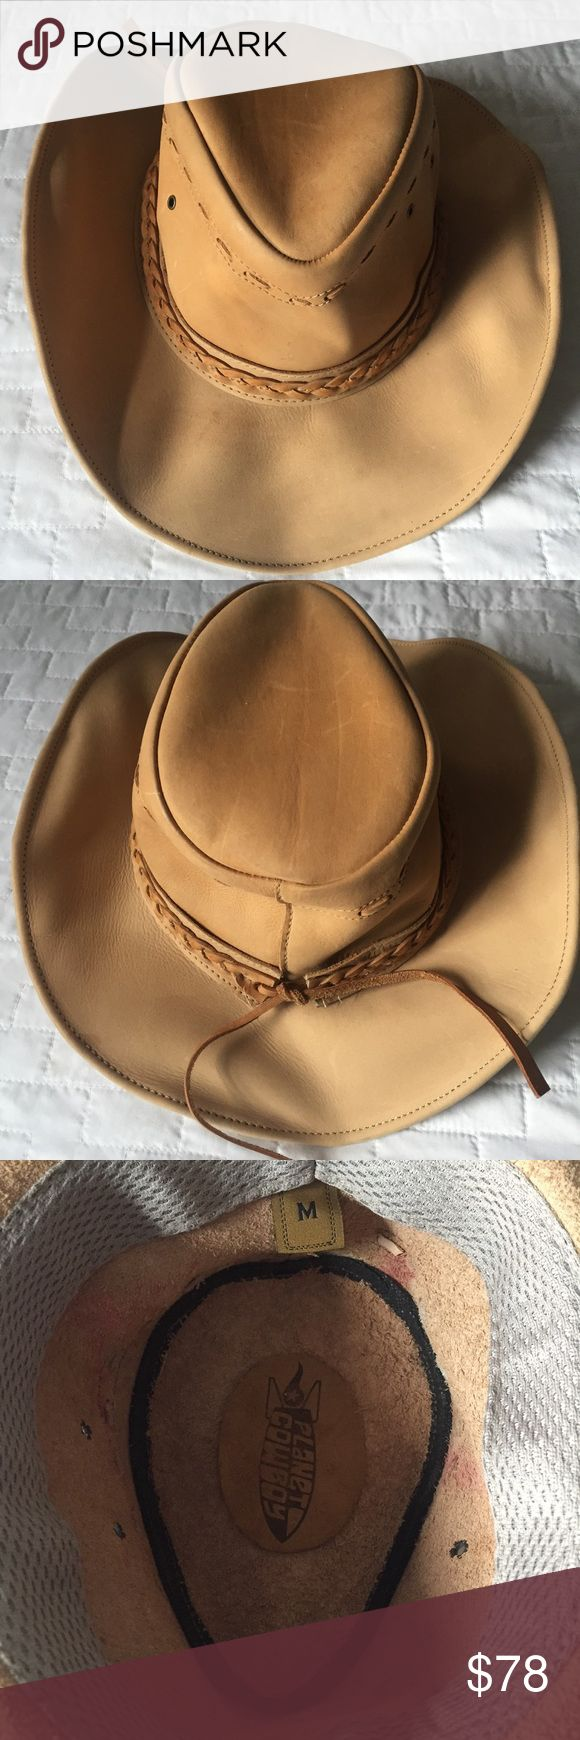 🤠 Leather Western Cowboy Hat Never worn. In great condition. Will only look better with age. Bought from the famed NYC store, Space Cowboy.   The one in the first two photos isn't the actual hat, just wanted to give you a professional grade photo for an idea.   Size M Space Cowboy Accessories Hats